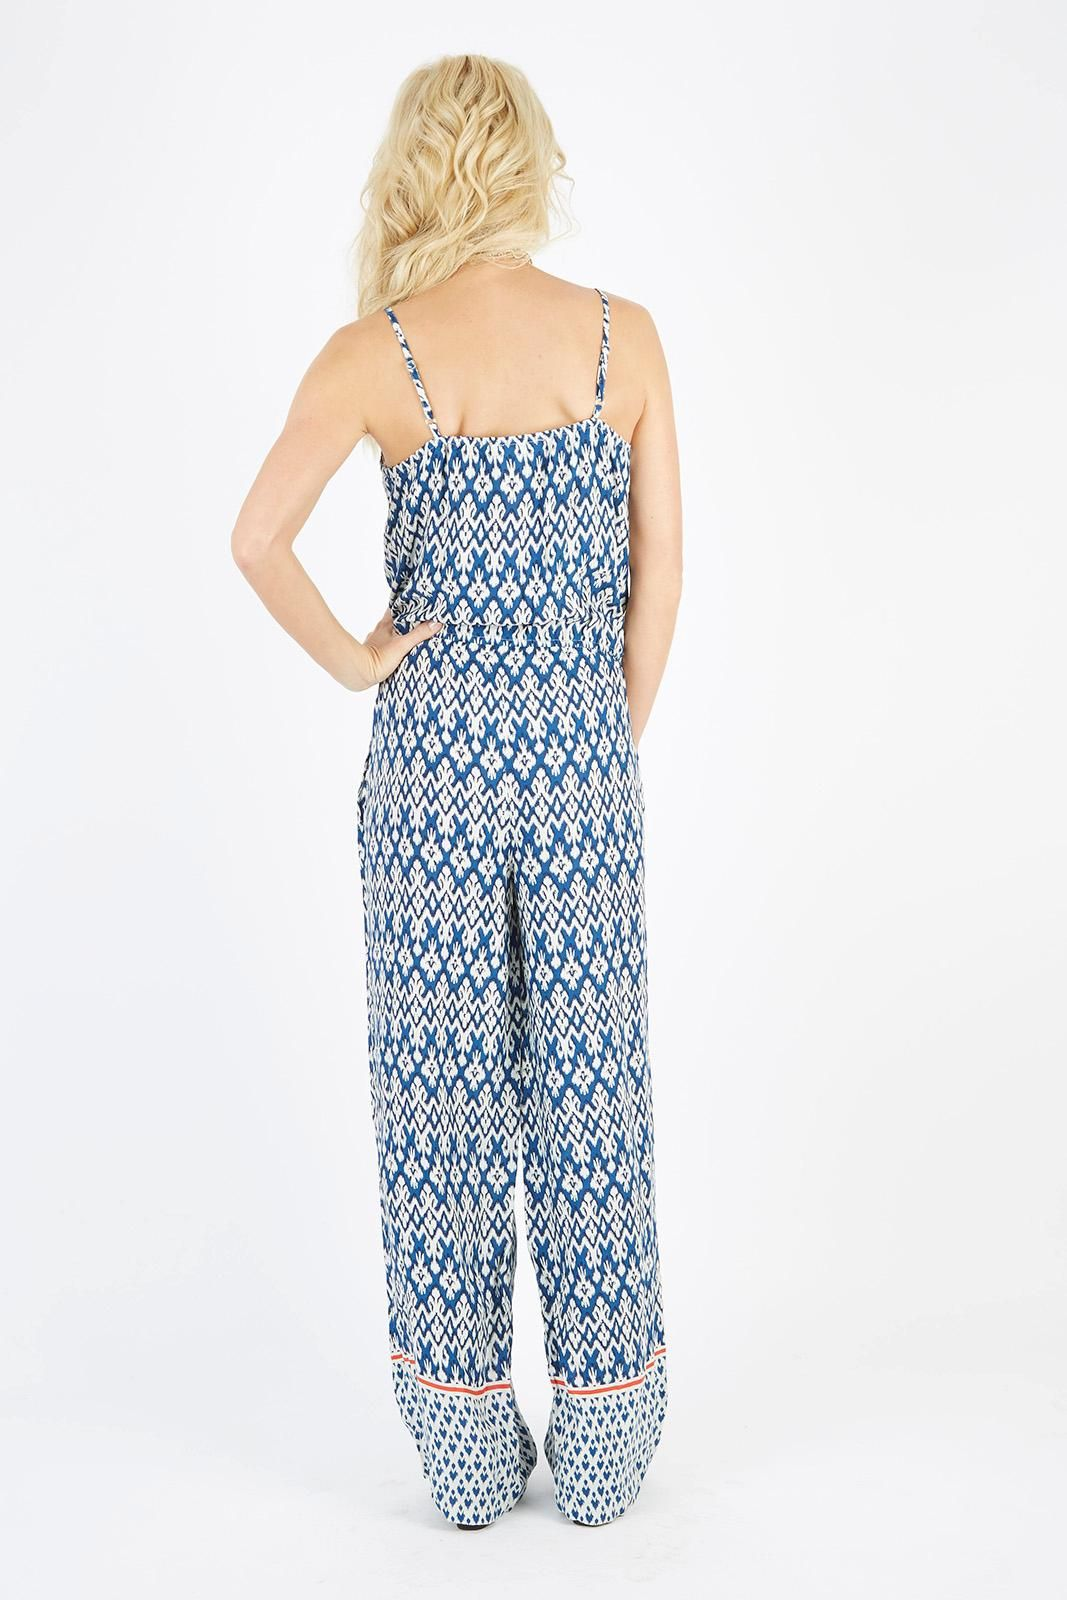 f89905f5f5a20 Printed Jumpsuit by BEACHLUNCHLOUNGE - EVEREVE